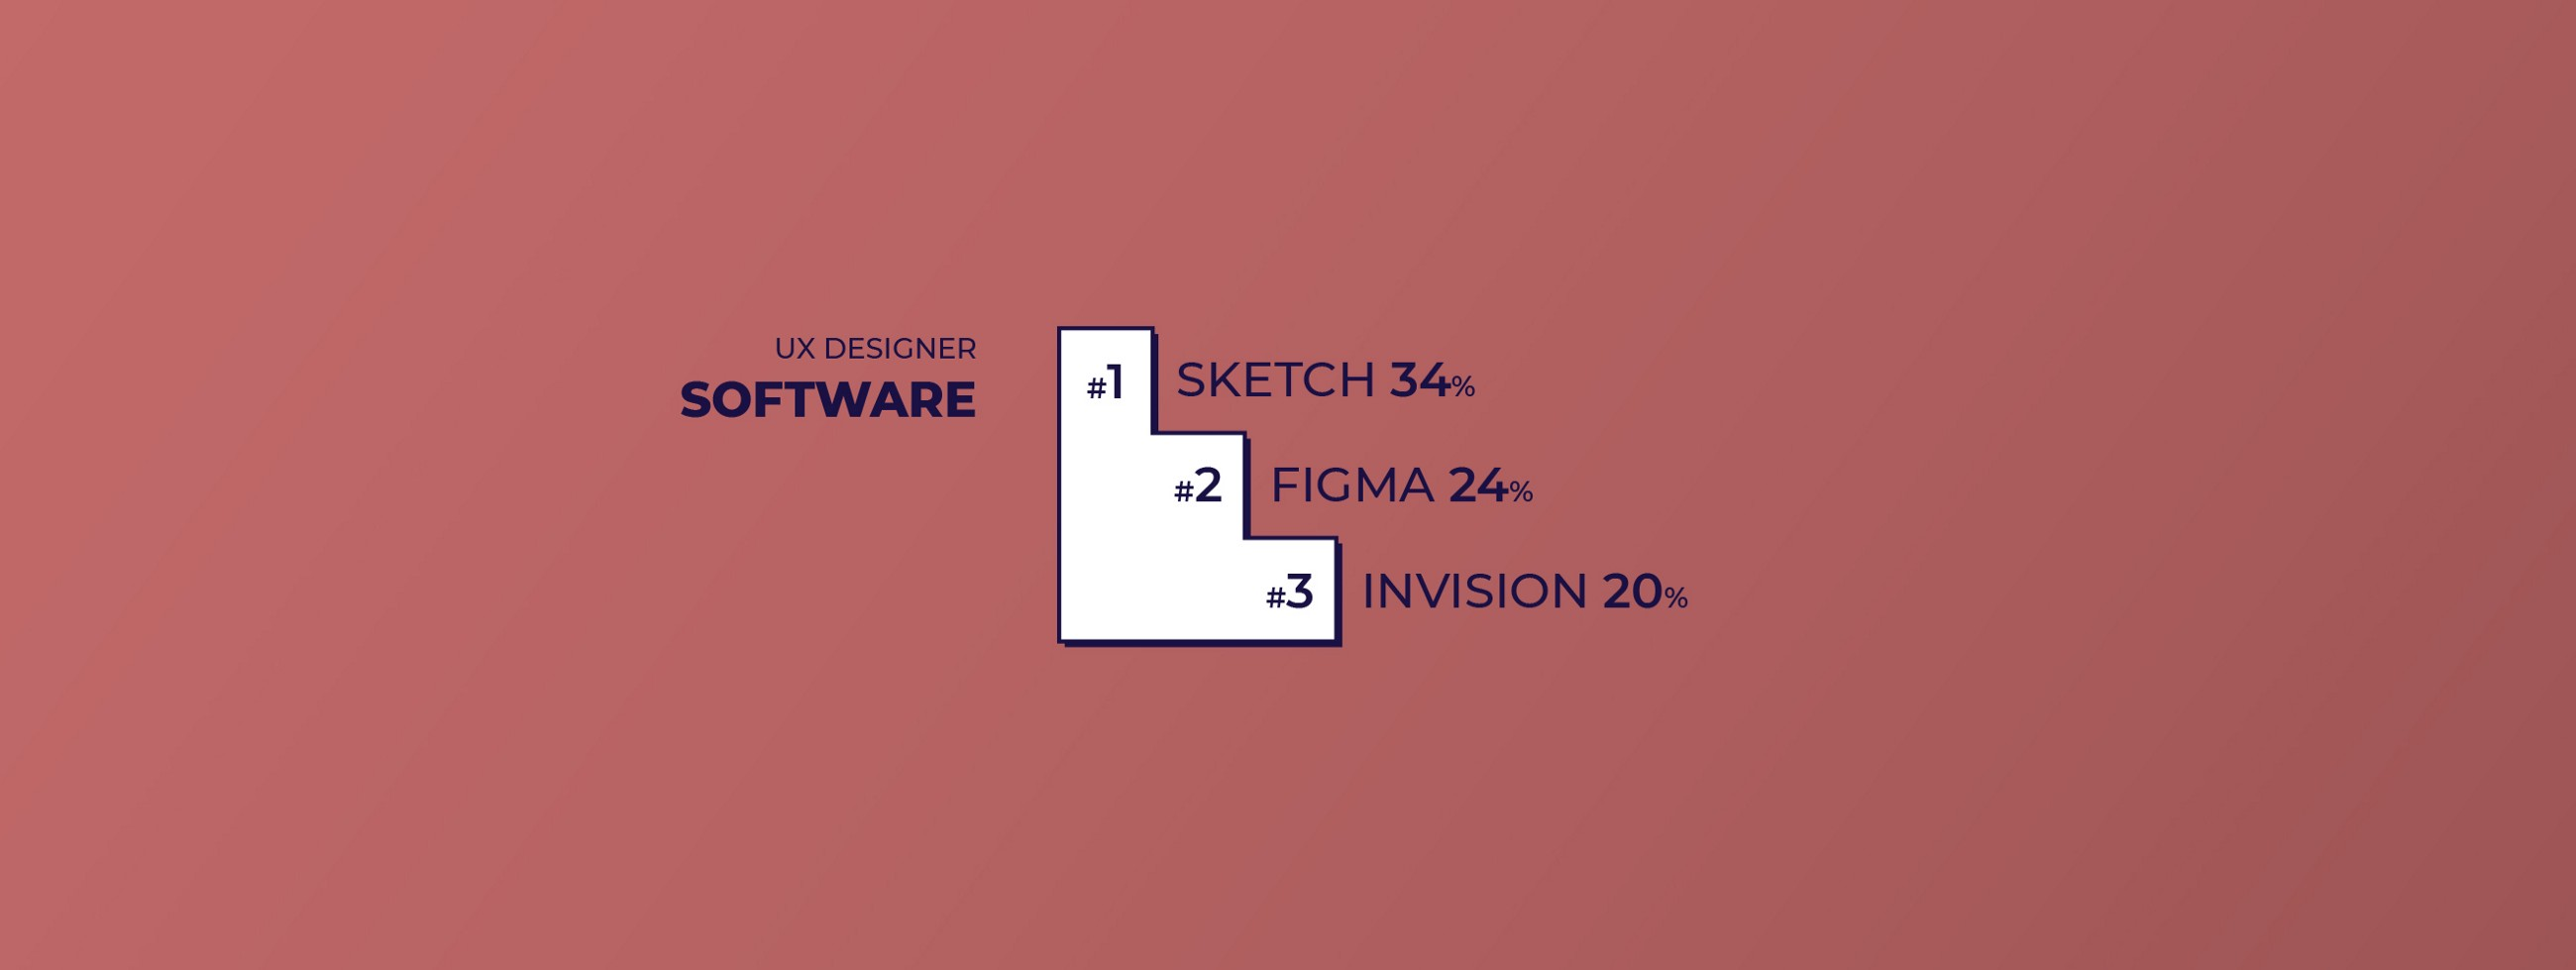 Top 3 Software for UX Designers: #1 Sketch, #2 Figma and #3 Invision